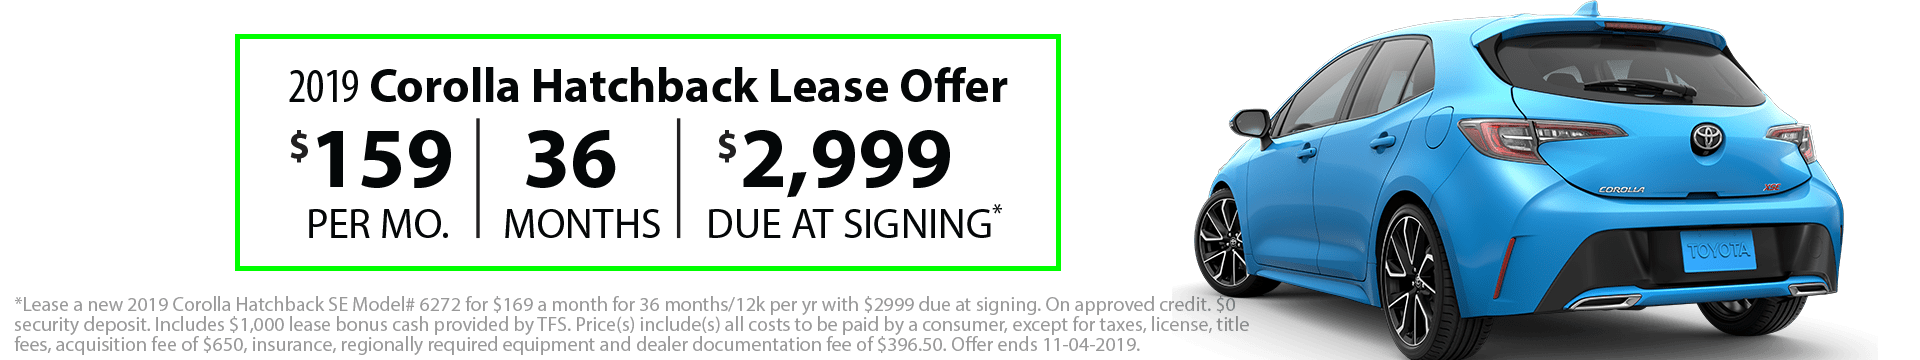 2019 Corolla Hatchback Special Lease Offer